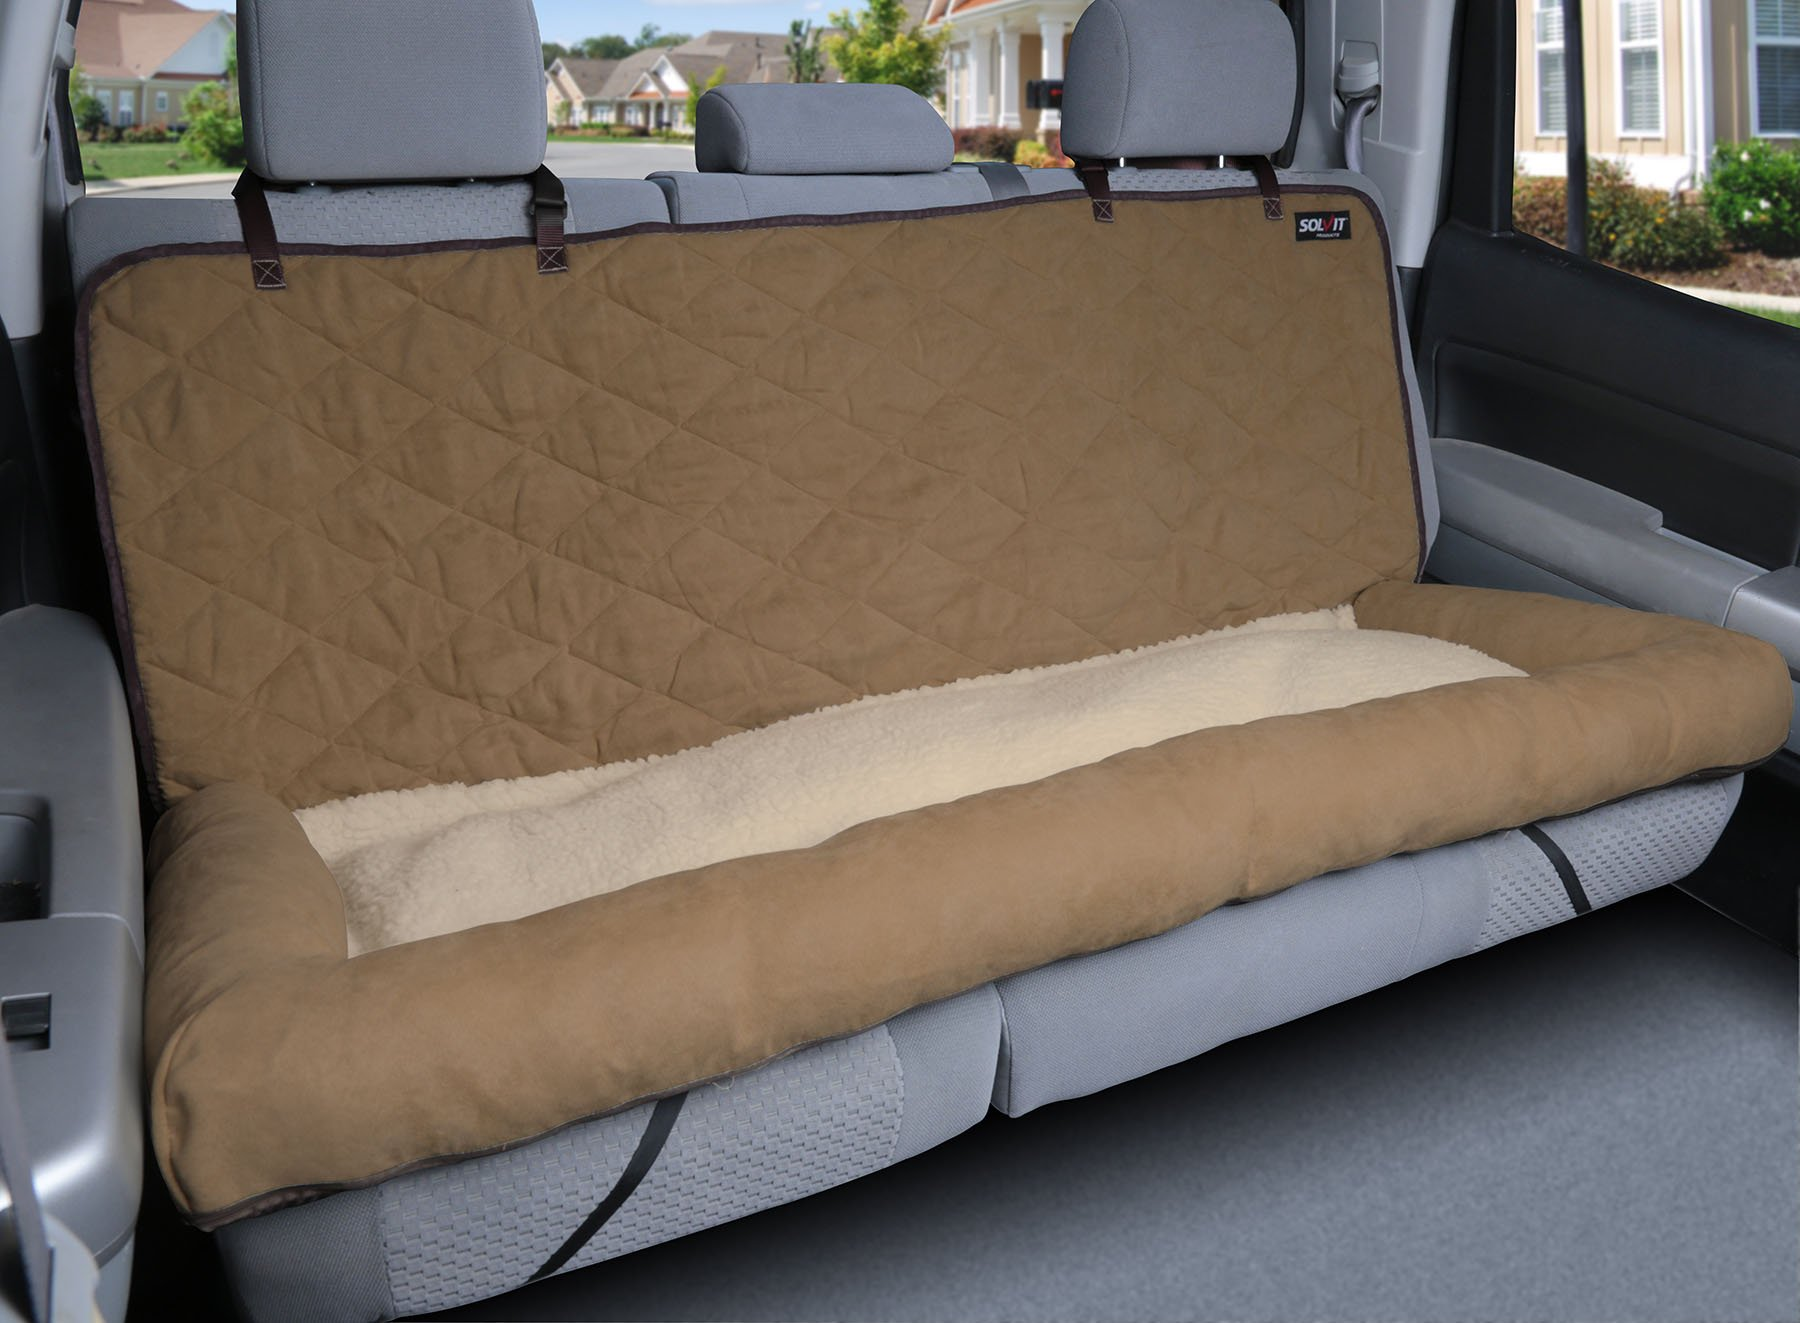 Solvit 62454 Car Cuddler, Large, Brown